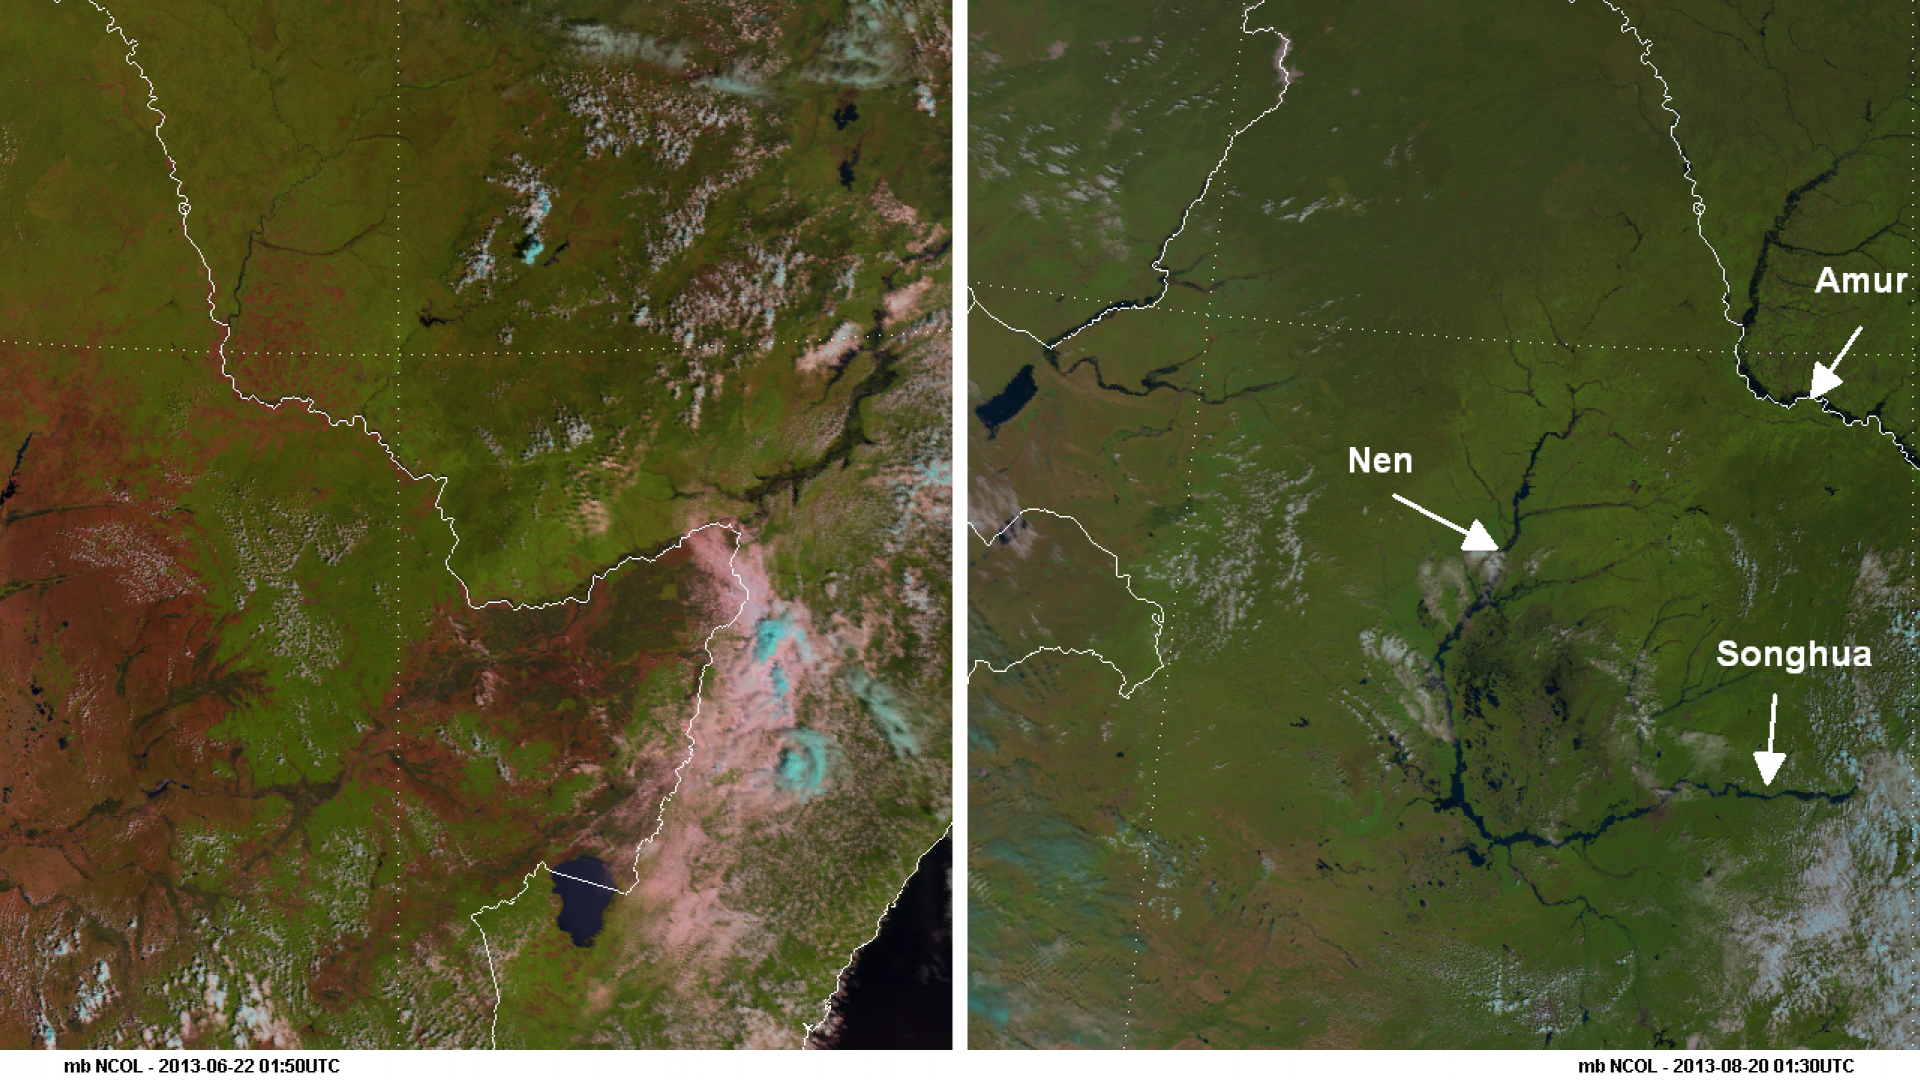 Flooding in Russia and China